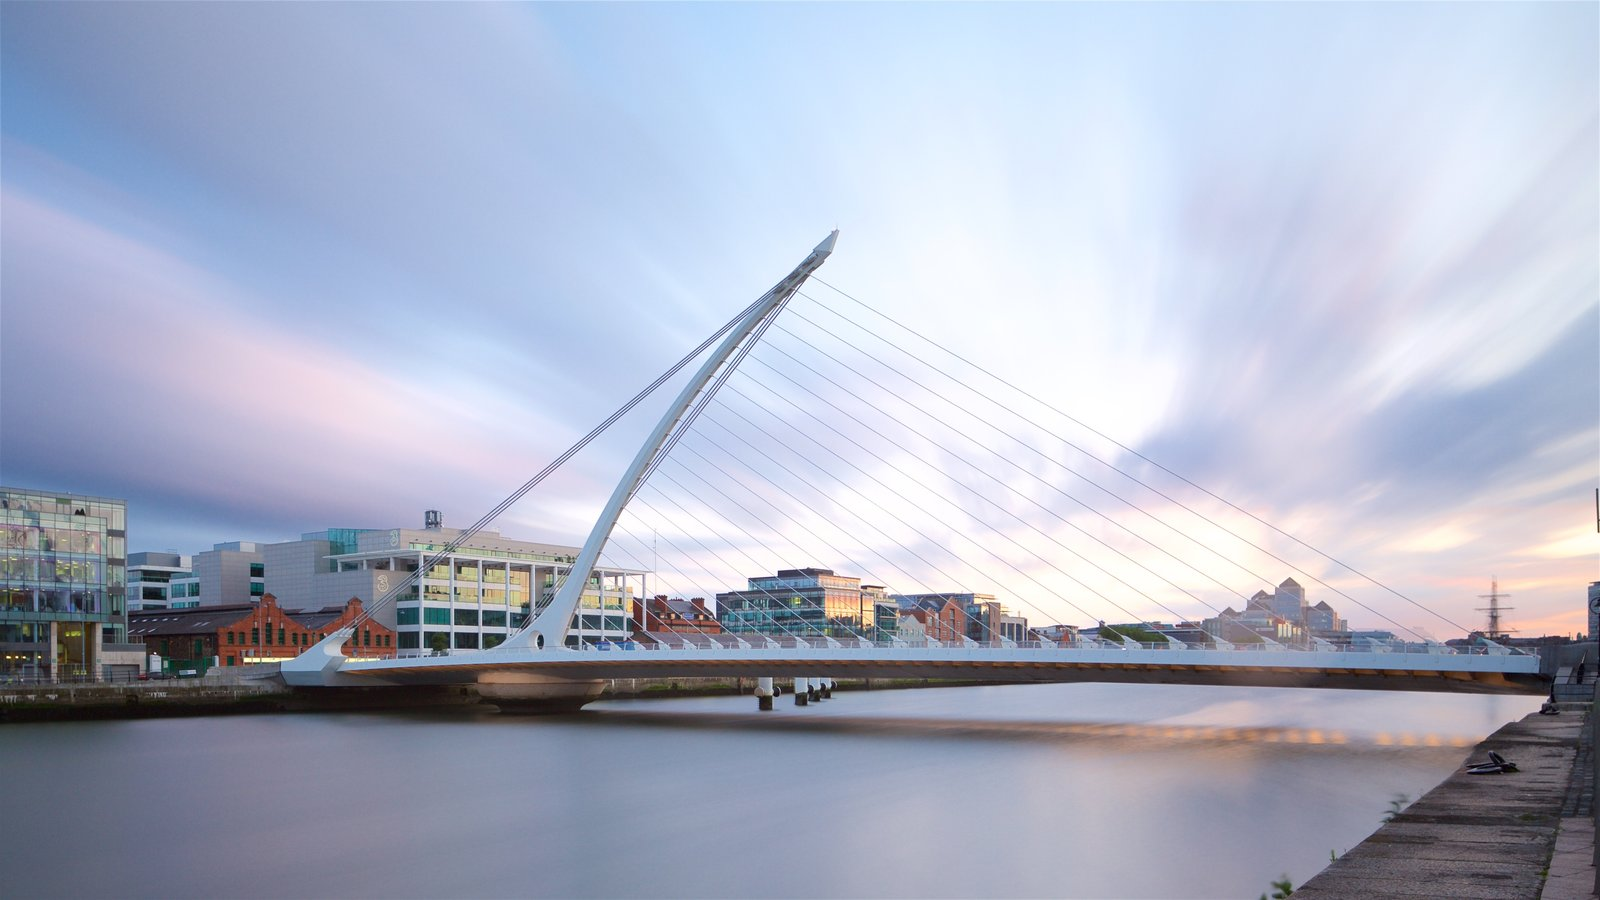 Modern Architecture Dublin modern architecture pictures: view images of samuel beckett bridge